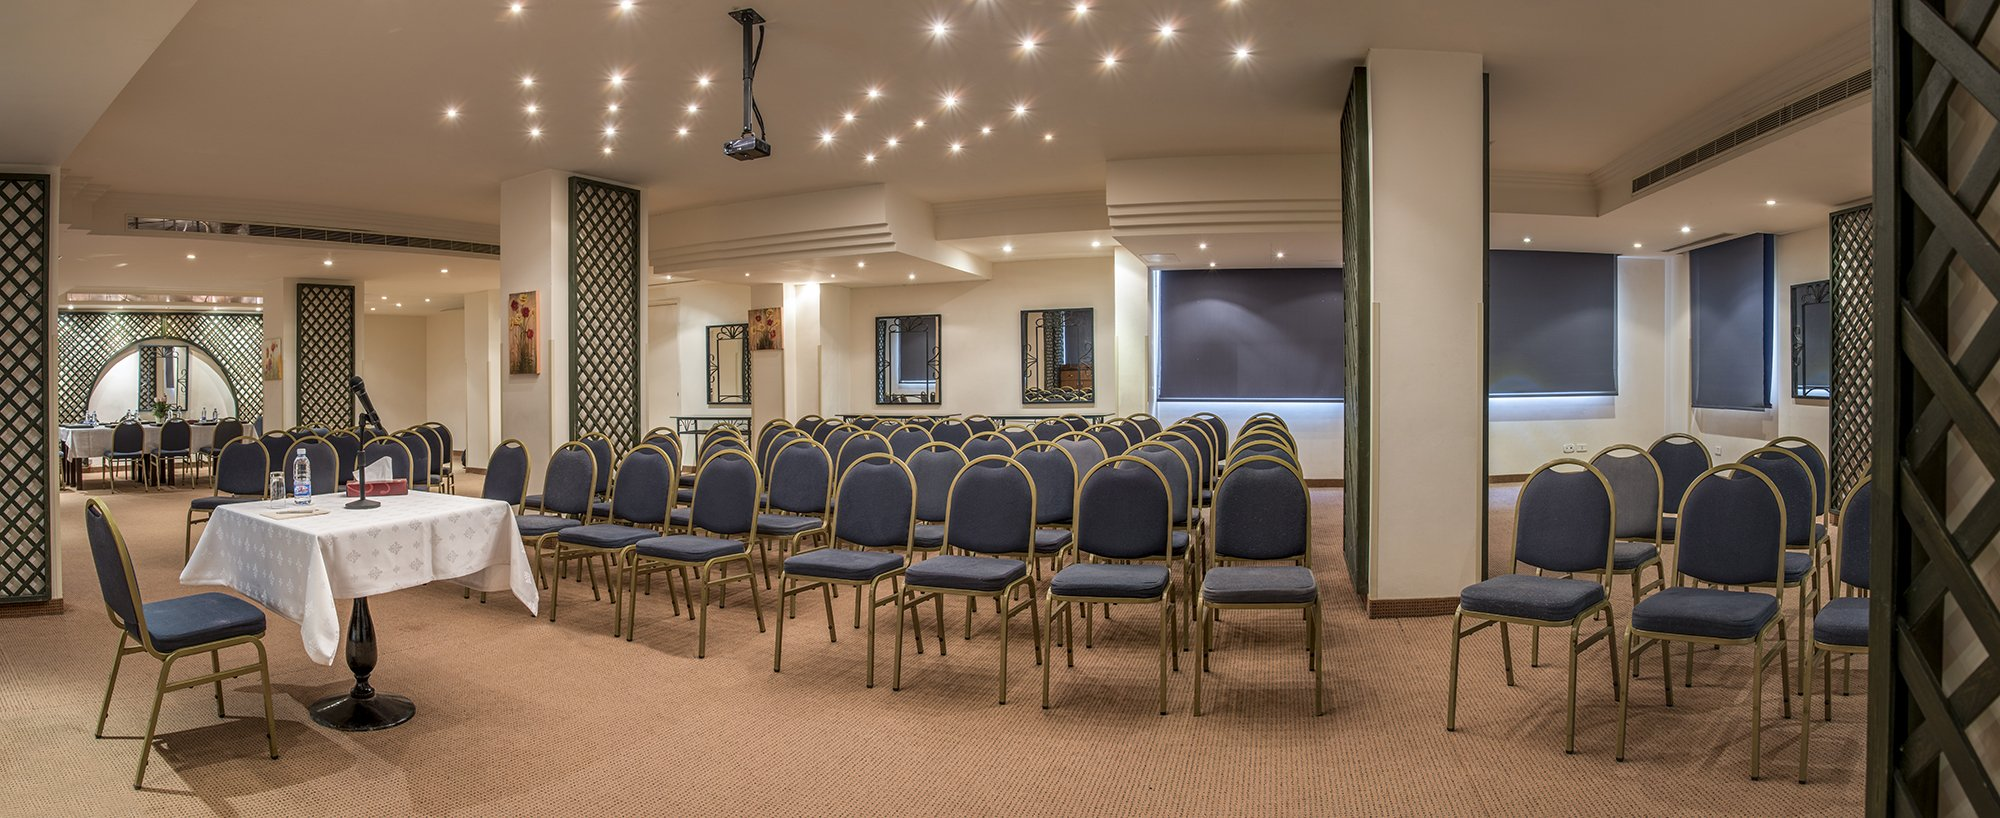 host your conferences in our meeting rooms - bella riva hotel